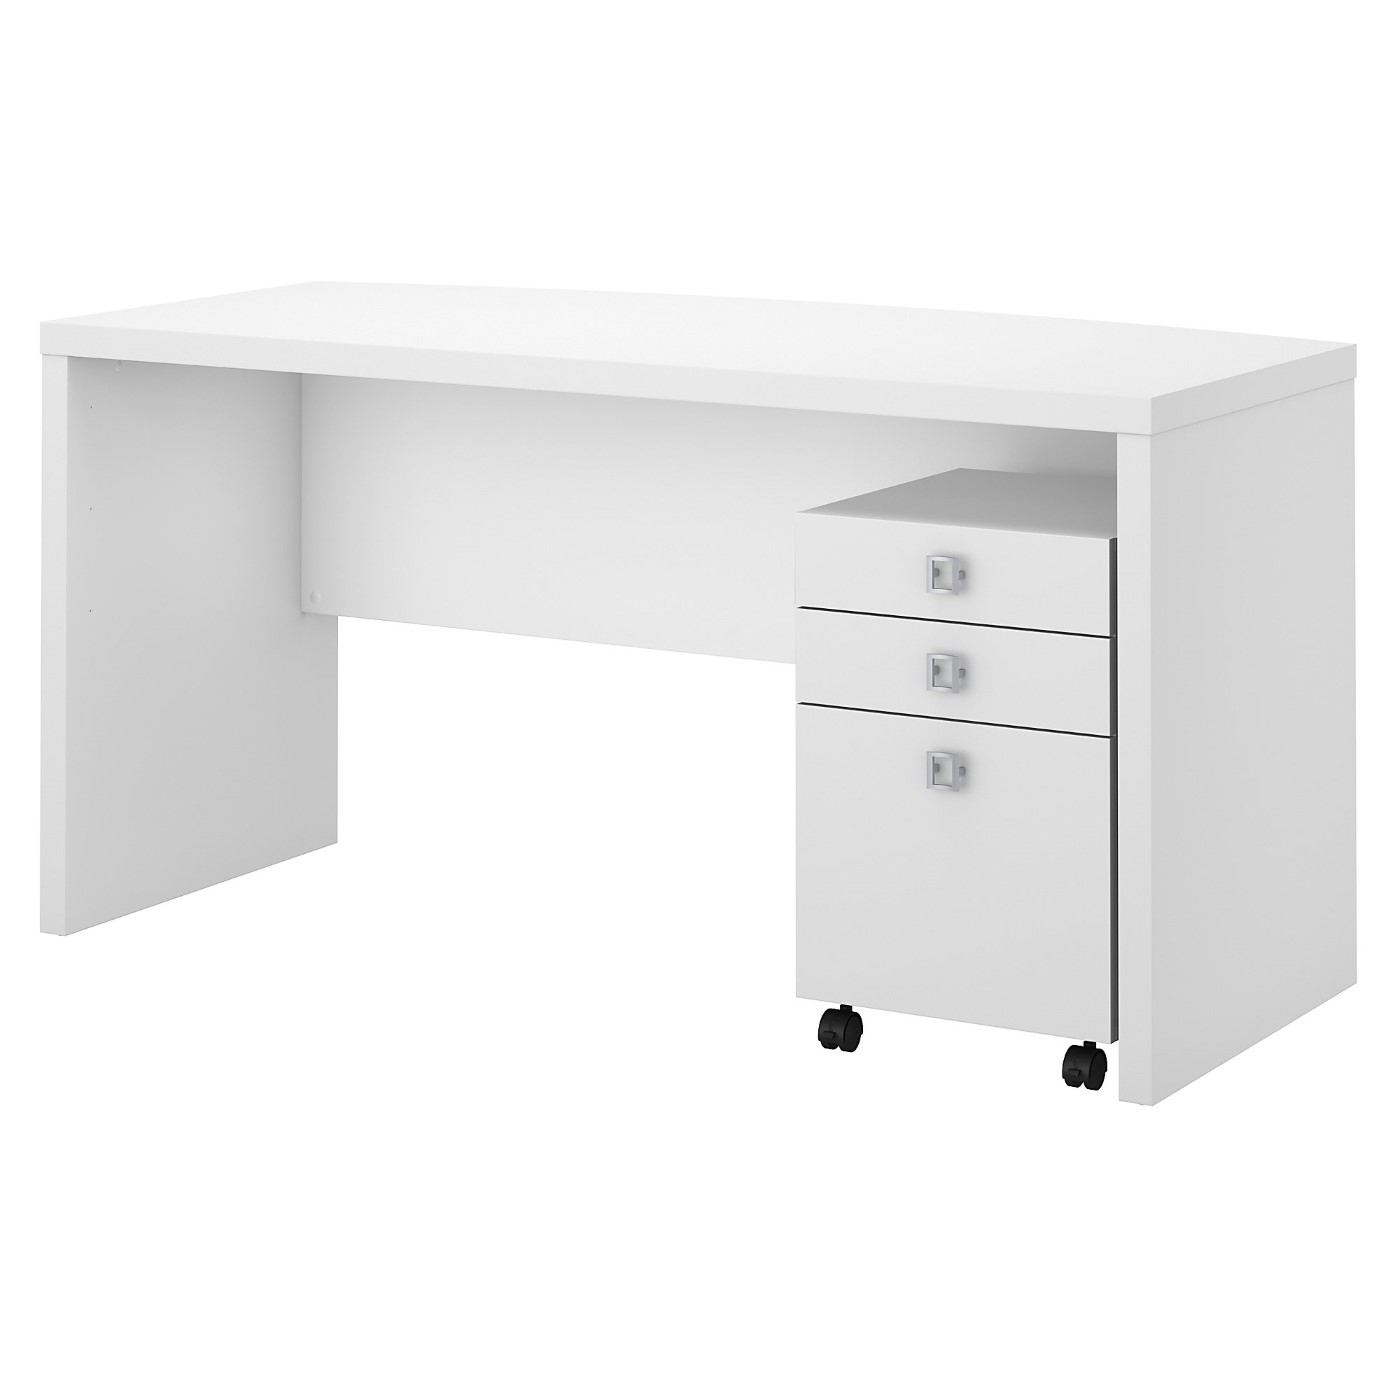 OFFICE BY KATHY IRELAND® ECHO BOW FRONT DESK WITH MOBILE FILE CABINET. FREE SHIPPING SALE DEDUCT 10% MORE ENTER '10percent' IN COUPON CODE BOX WHILE CHECKING OUT.